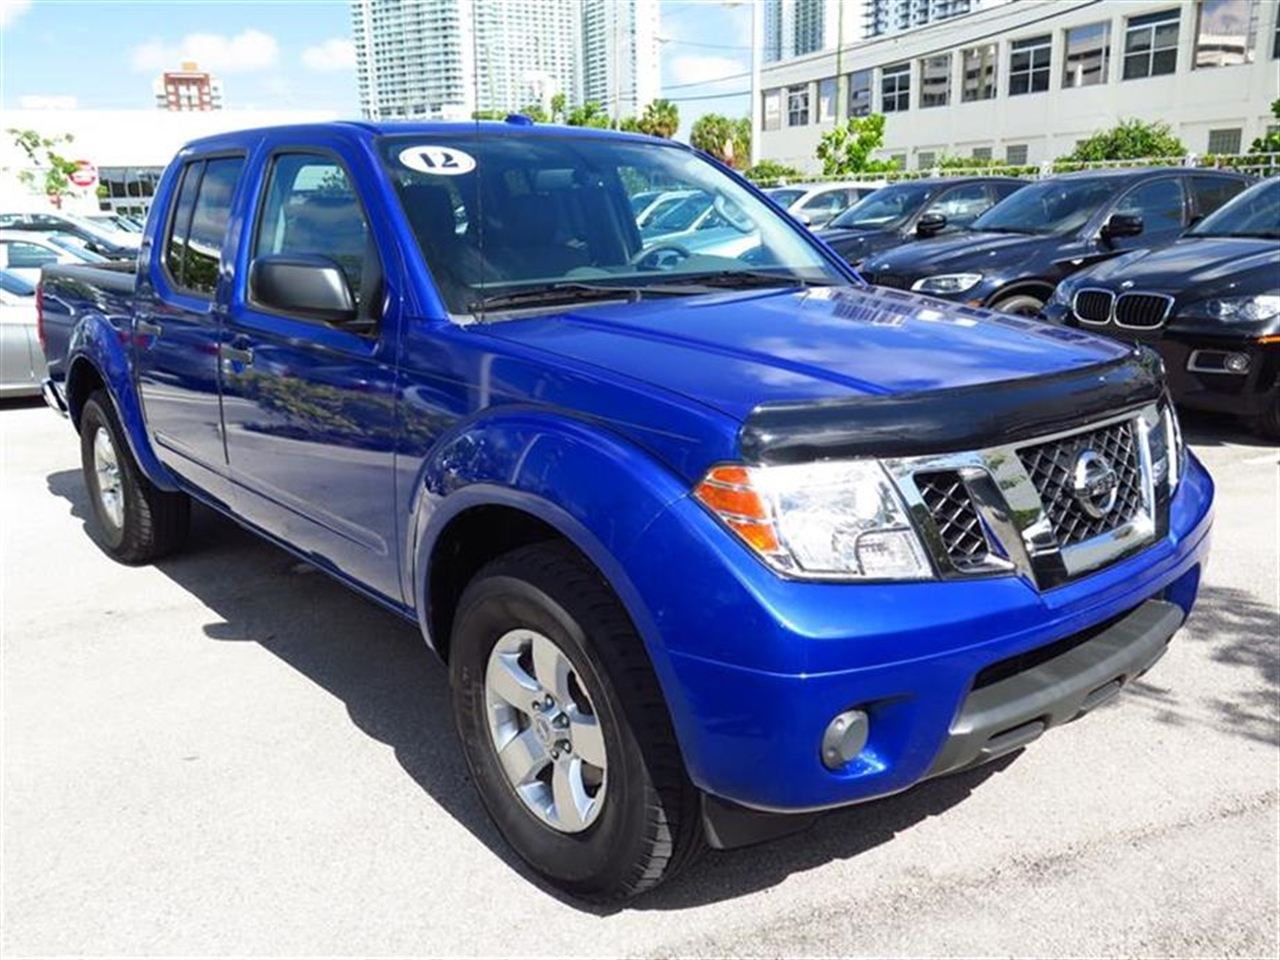 2012 NISS FRONTIER 2WD Crew Cab SWB Auto SV 55558 miles 2 auxiliary pwr outlets 6040 split re